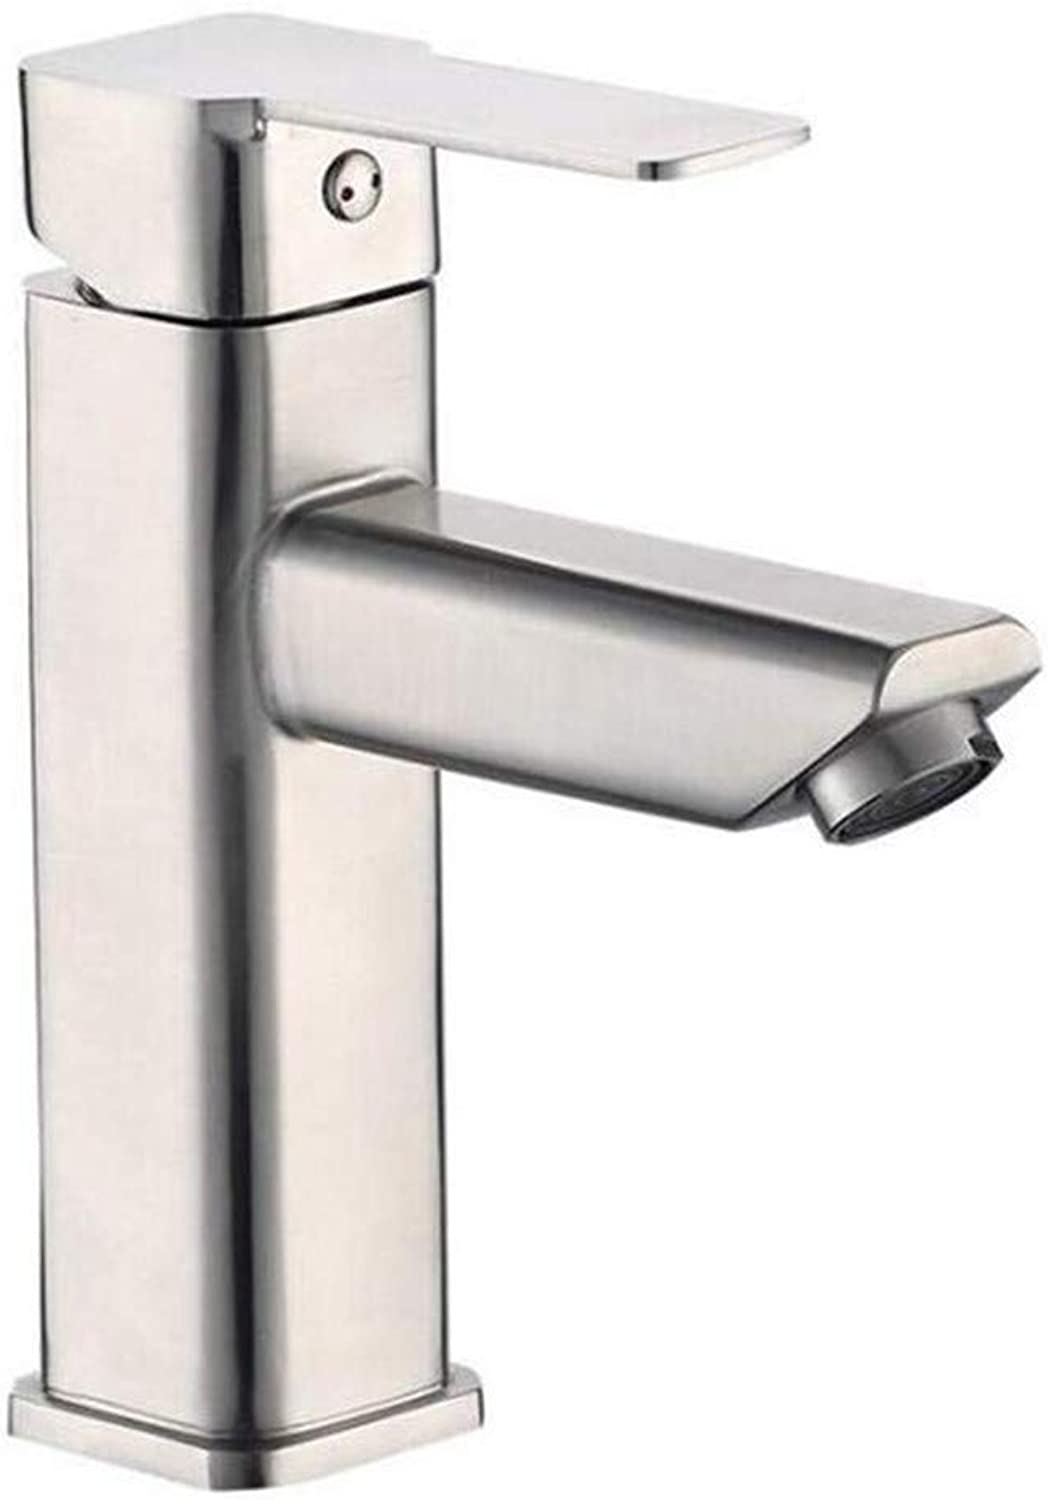 Kitchen Bath Basin Sink Bathroom Taps Taps Mixer Faucet Sink 304 Stainless Steel Hot and Cold Basin Faucet Ctzl0528